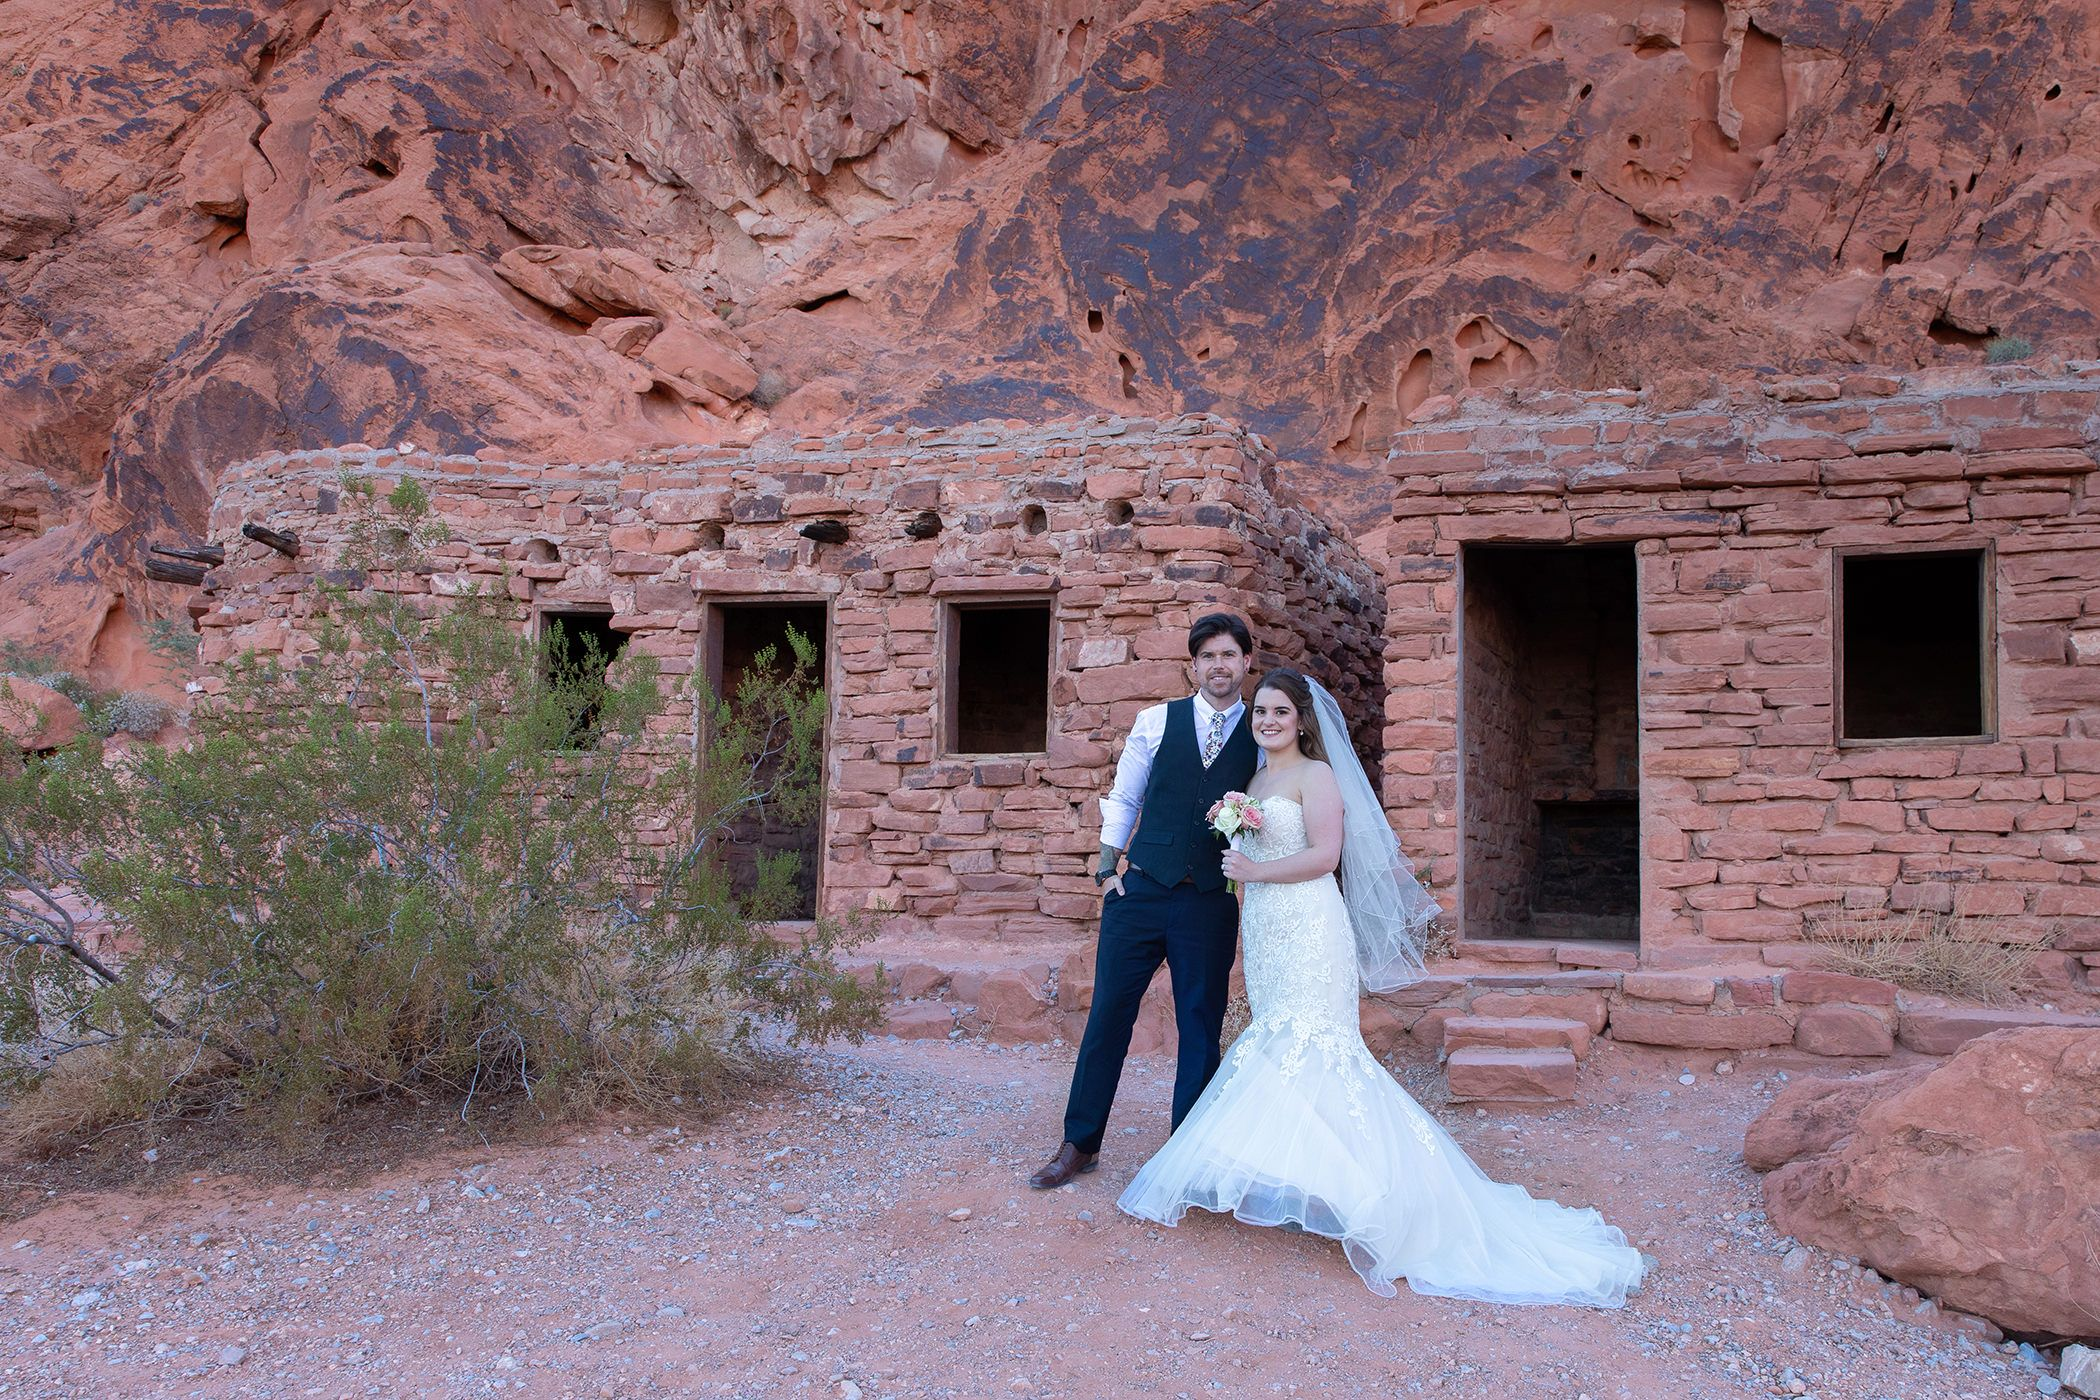 Valley of Fire ruins